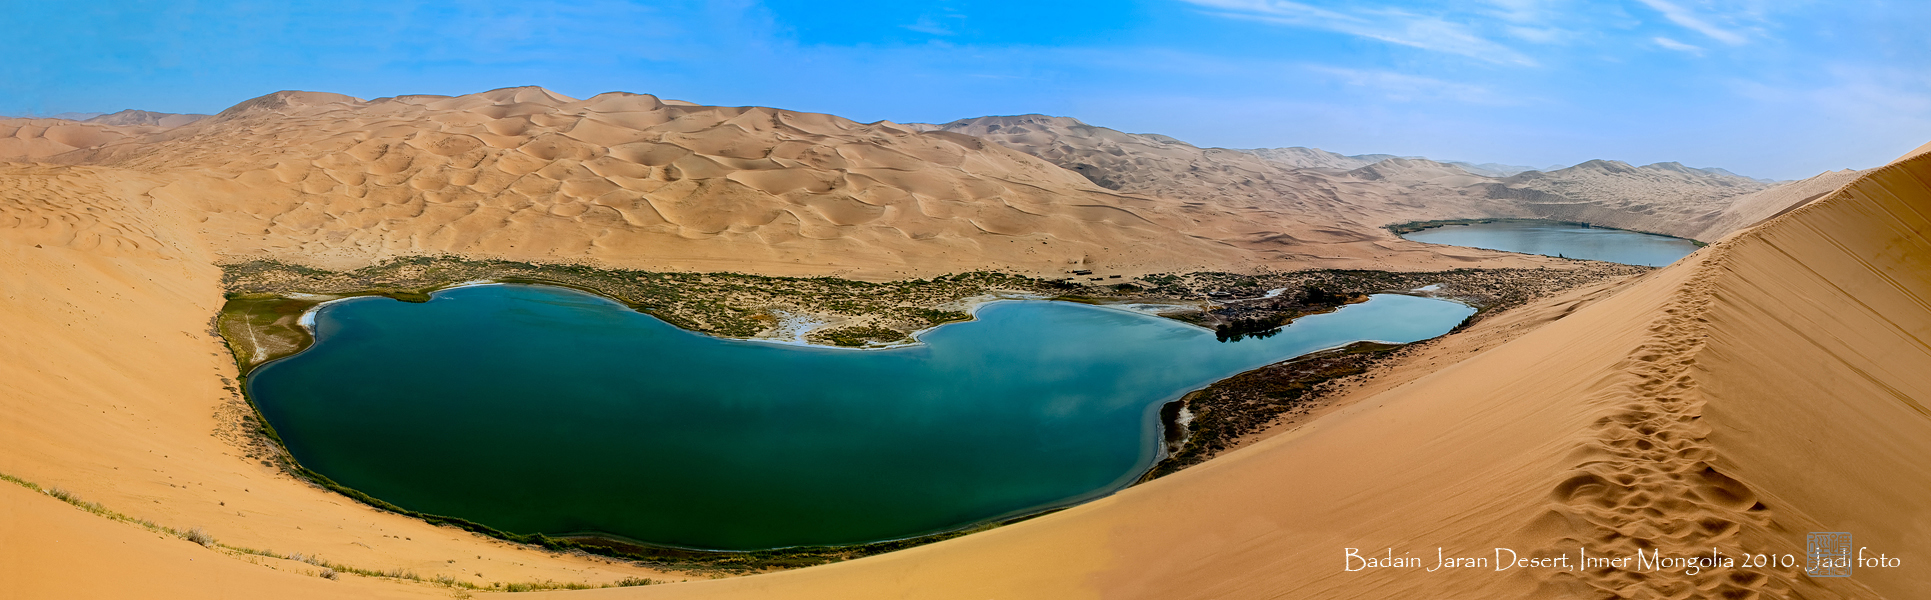 twin lakes in badain jaran desert, innner mongolia, china